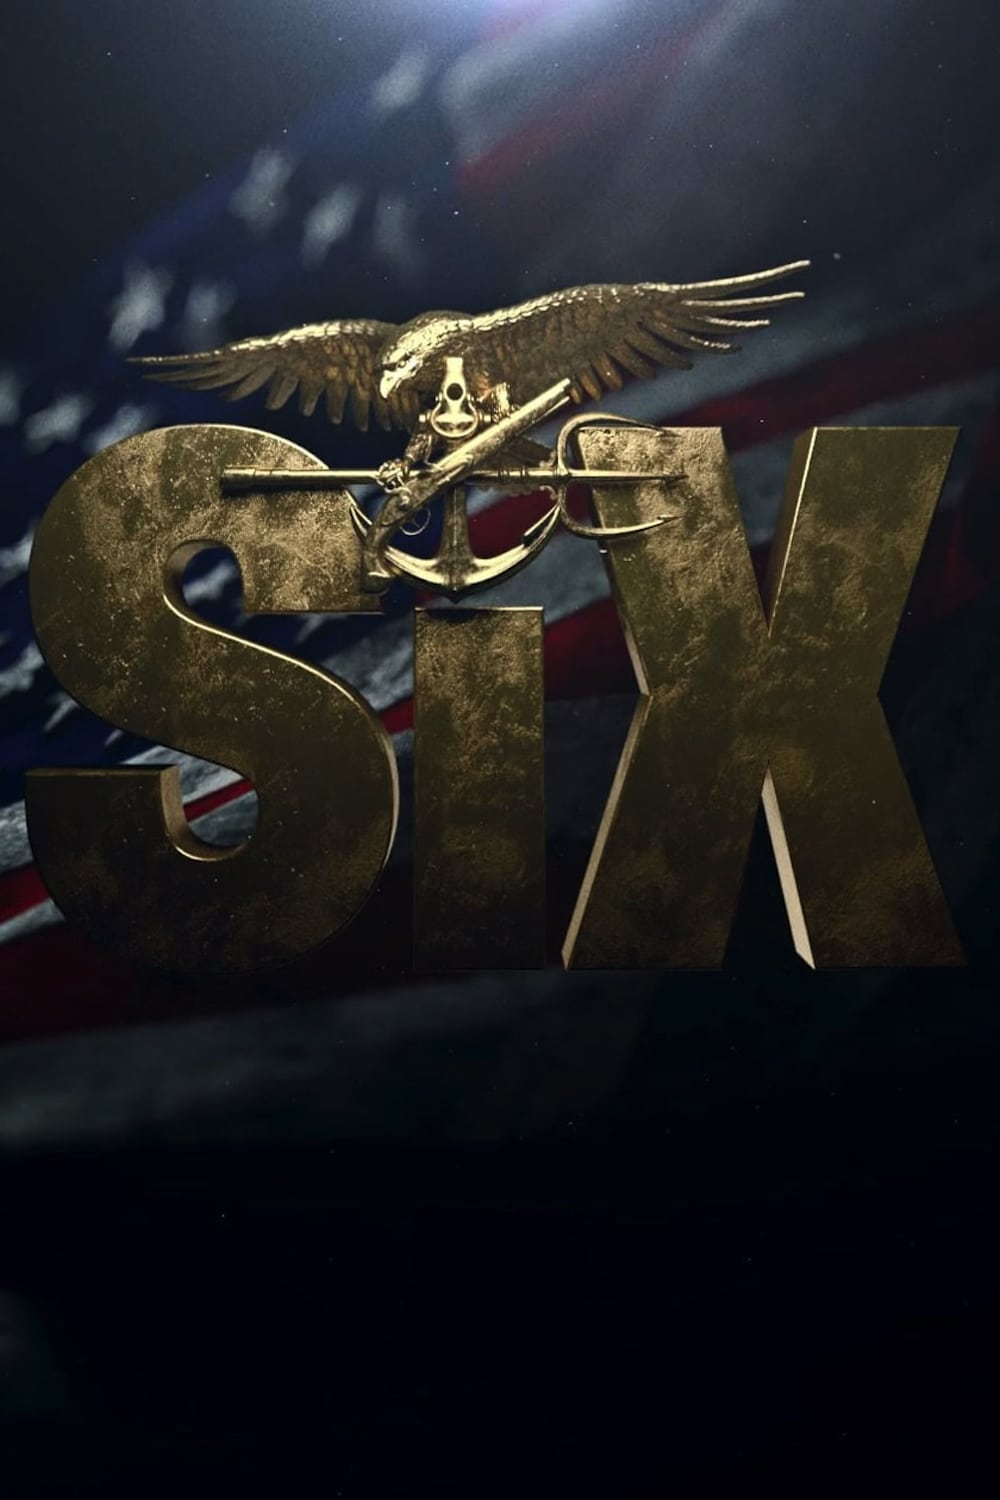 SIX TV Shows About Special Forces